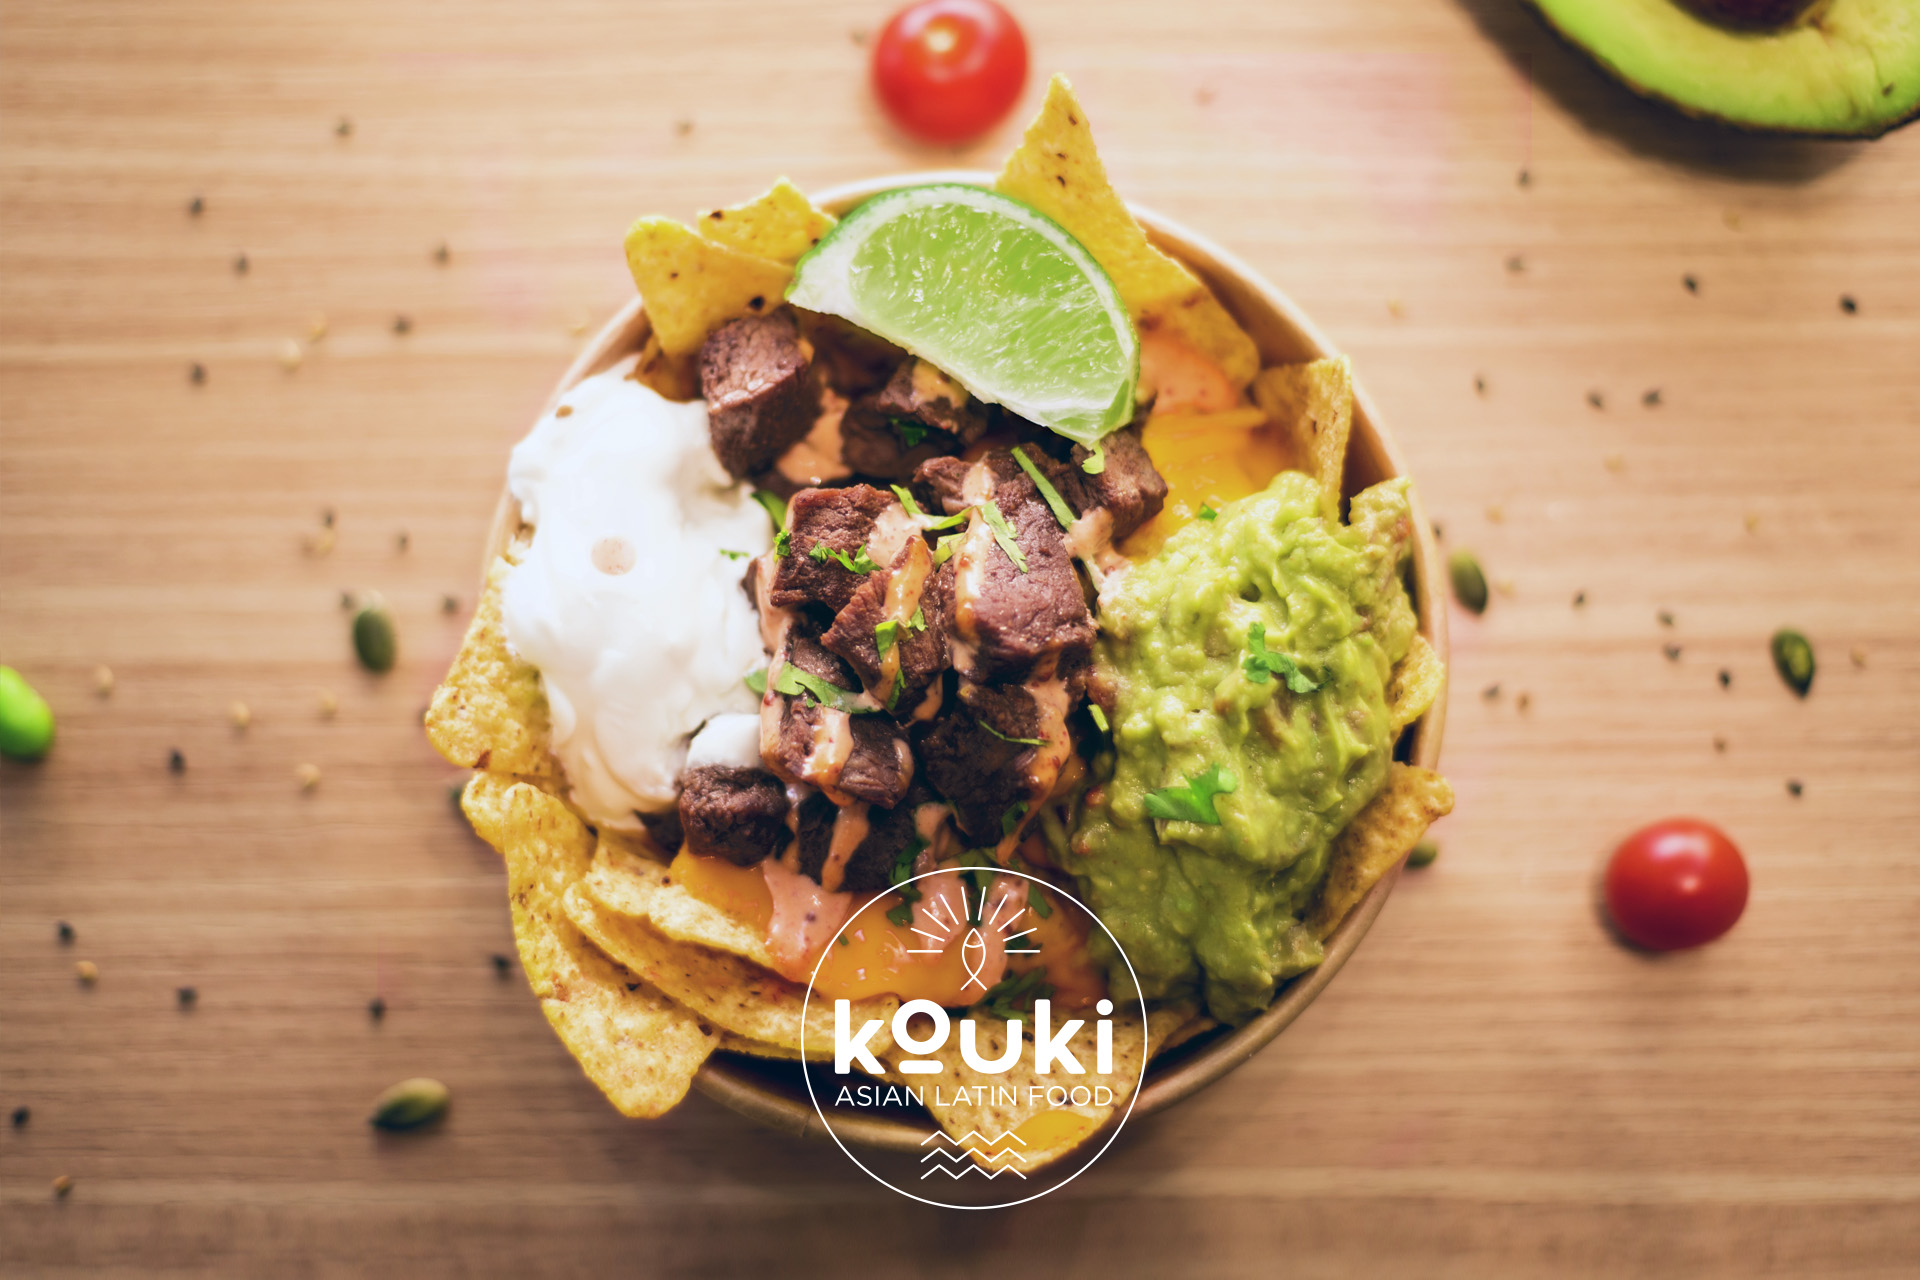 kouki nachos bowl boeuf latino asiatique